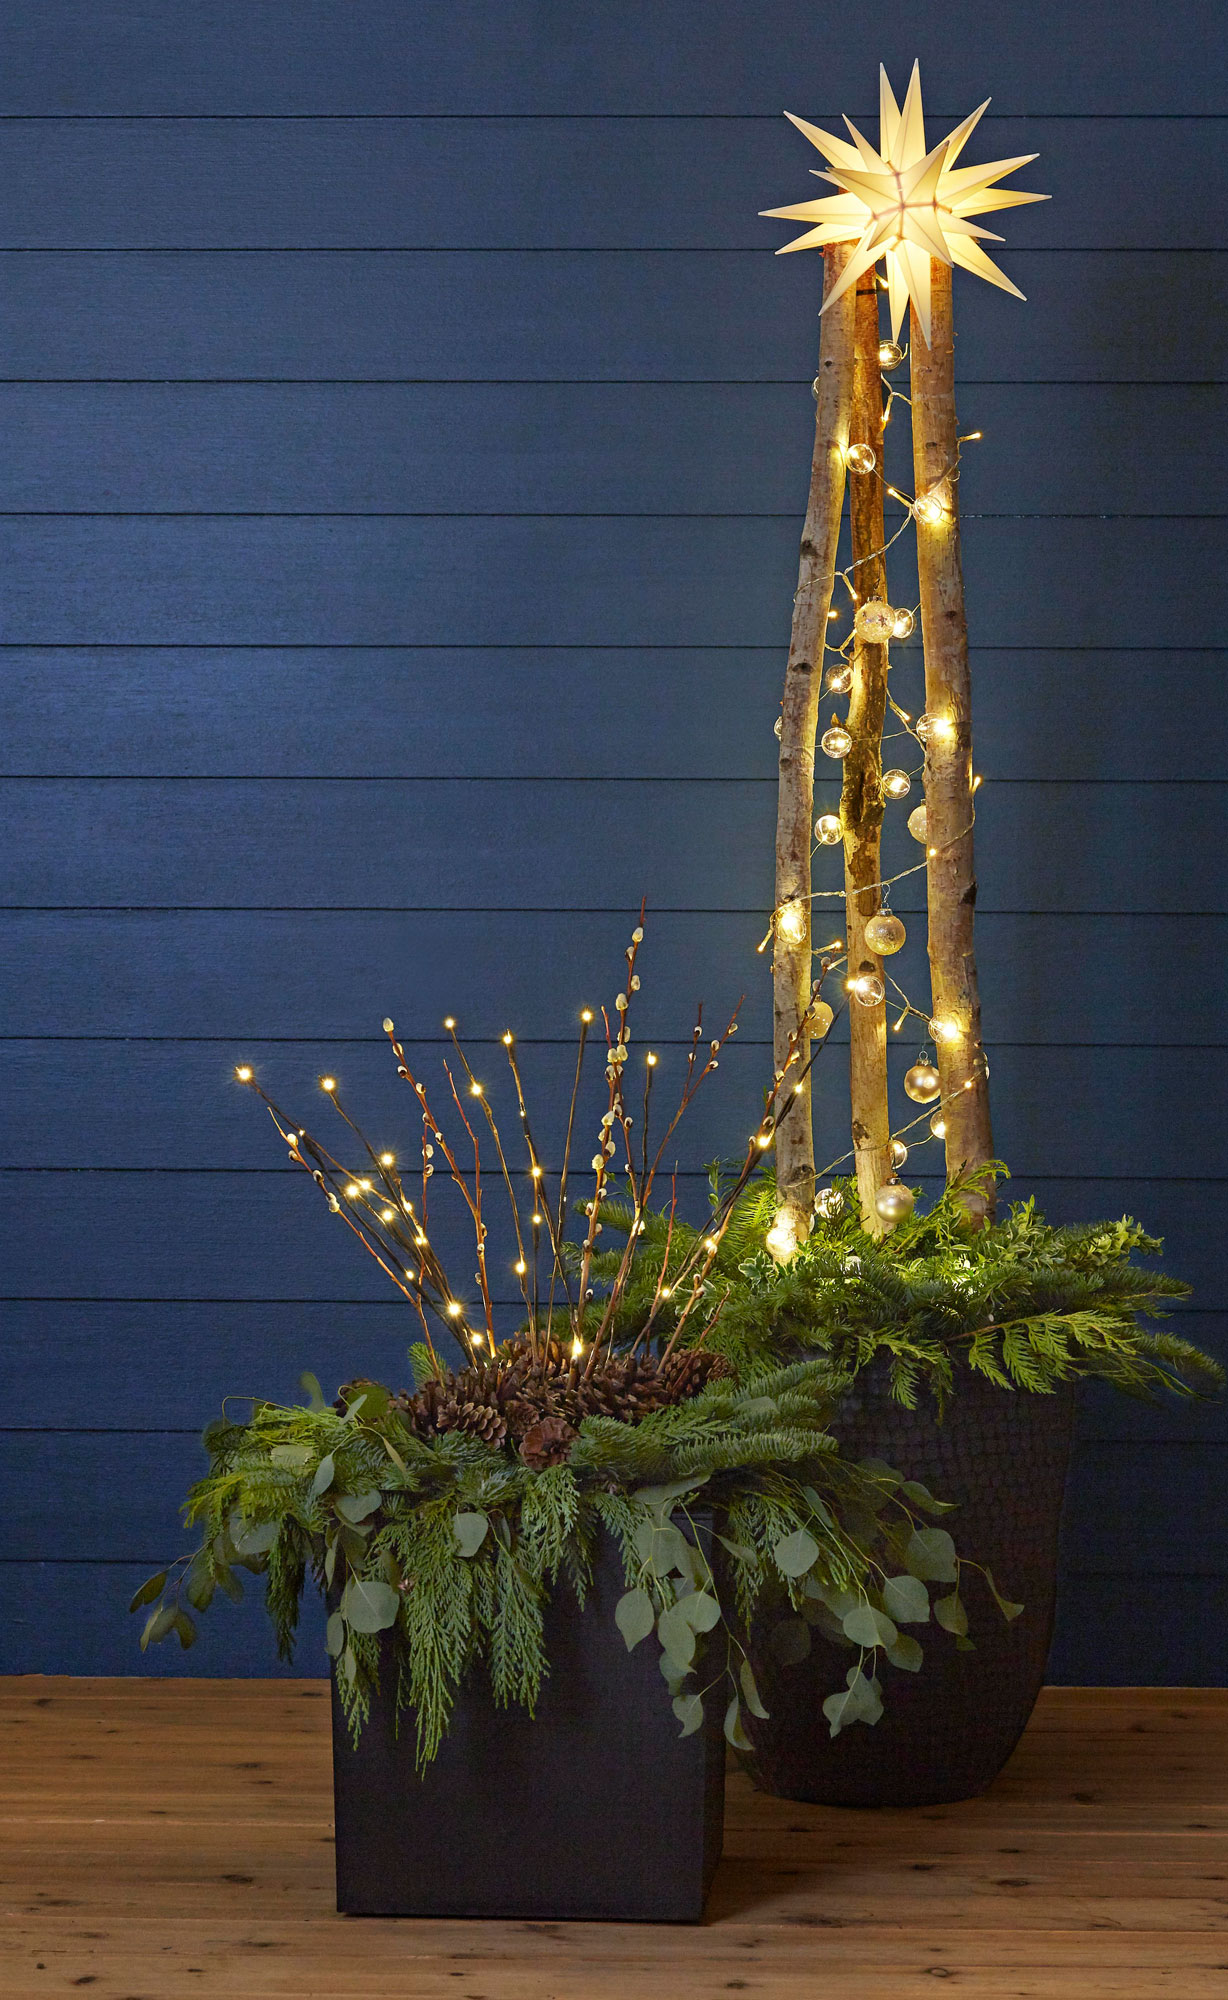 Winter front porch arrangement